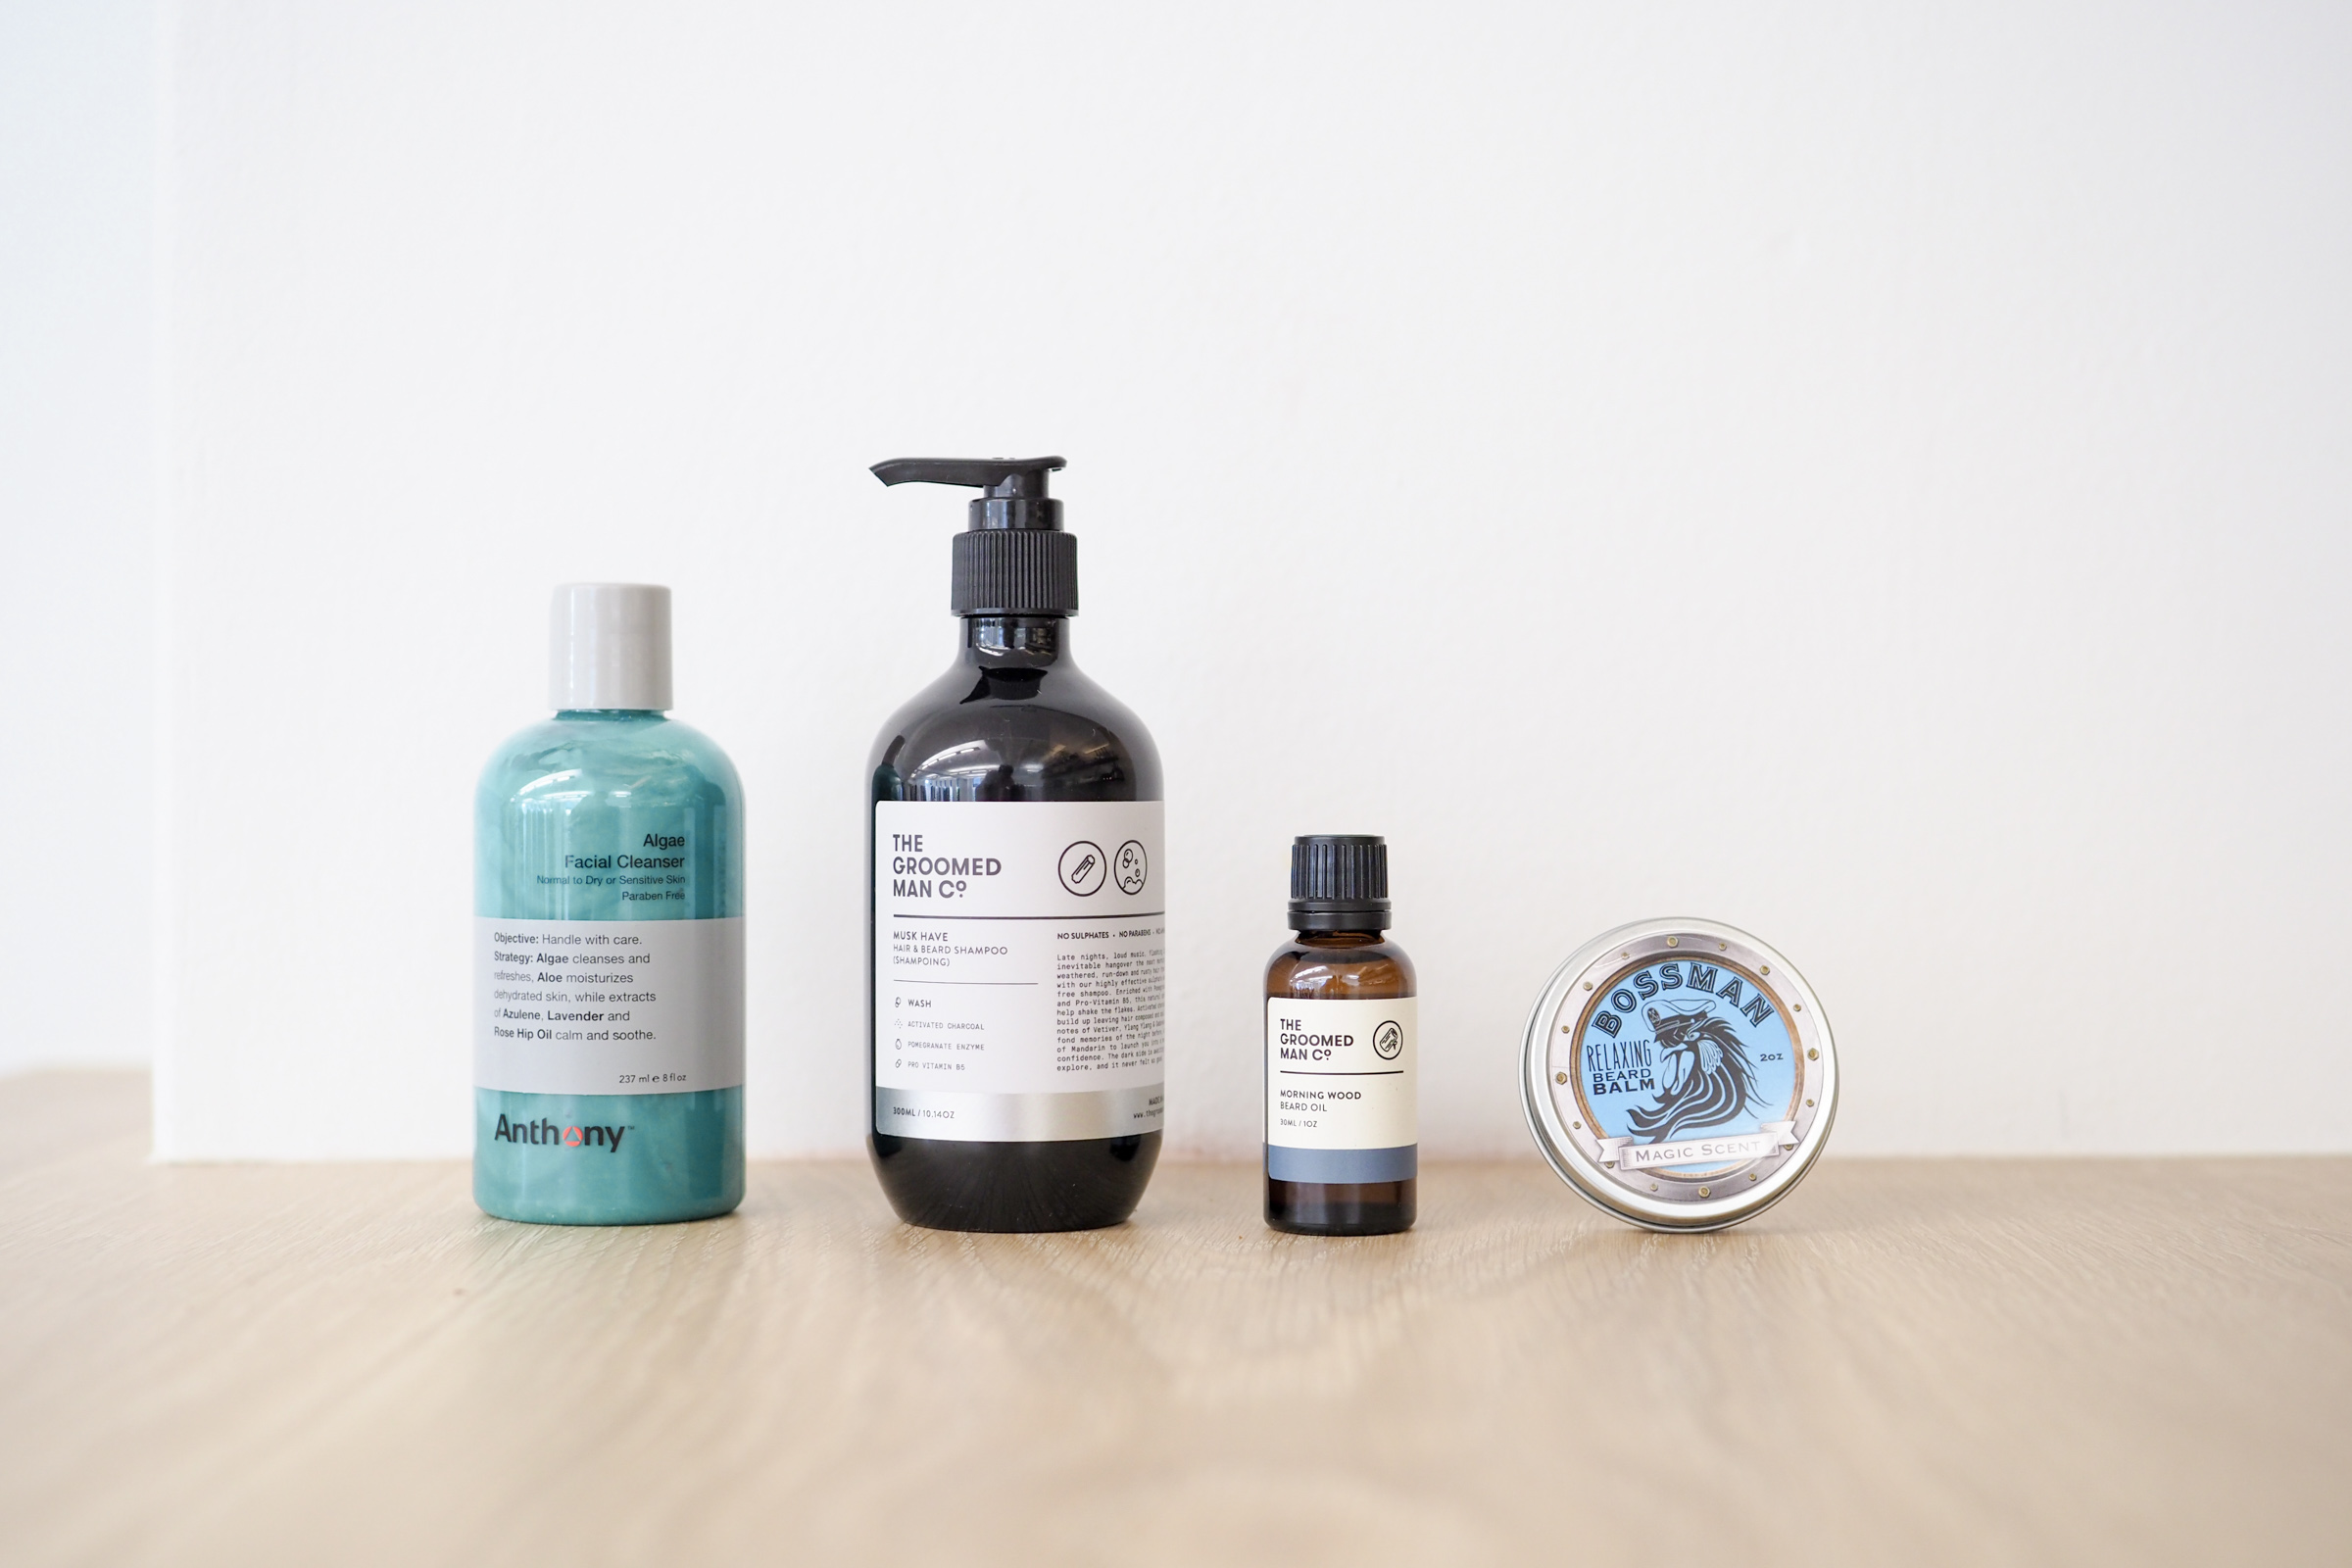 gentSac's Top Three Tips For Growing & Maintaining A Beard